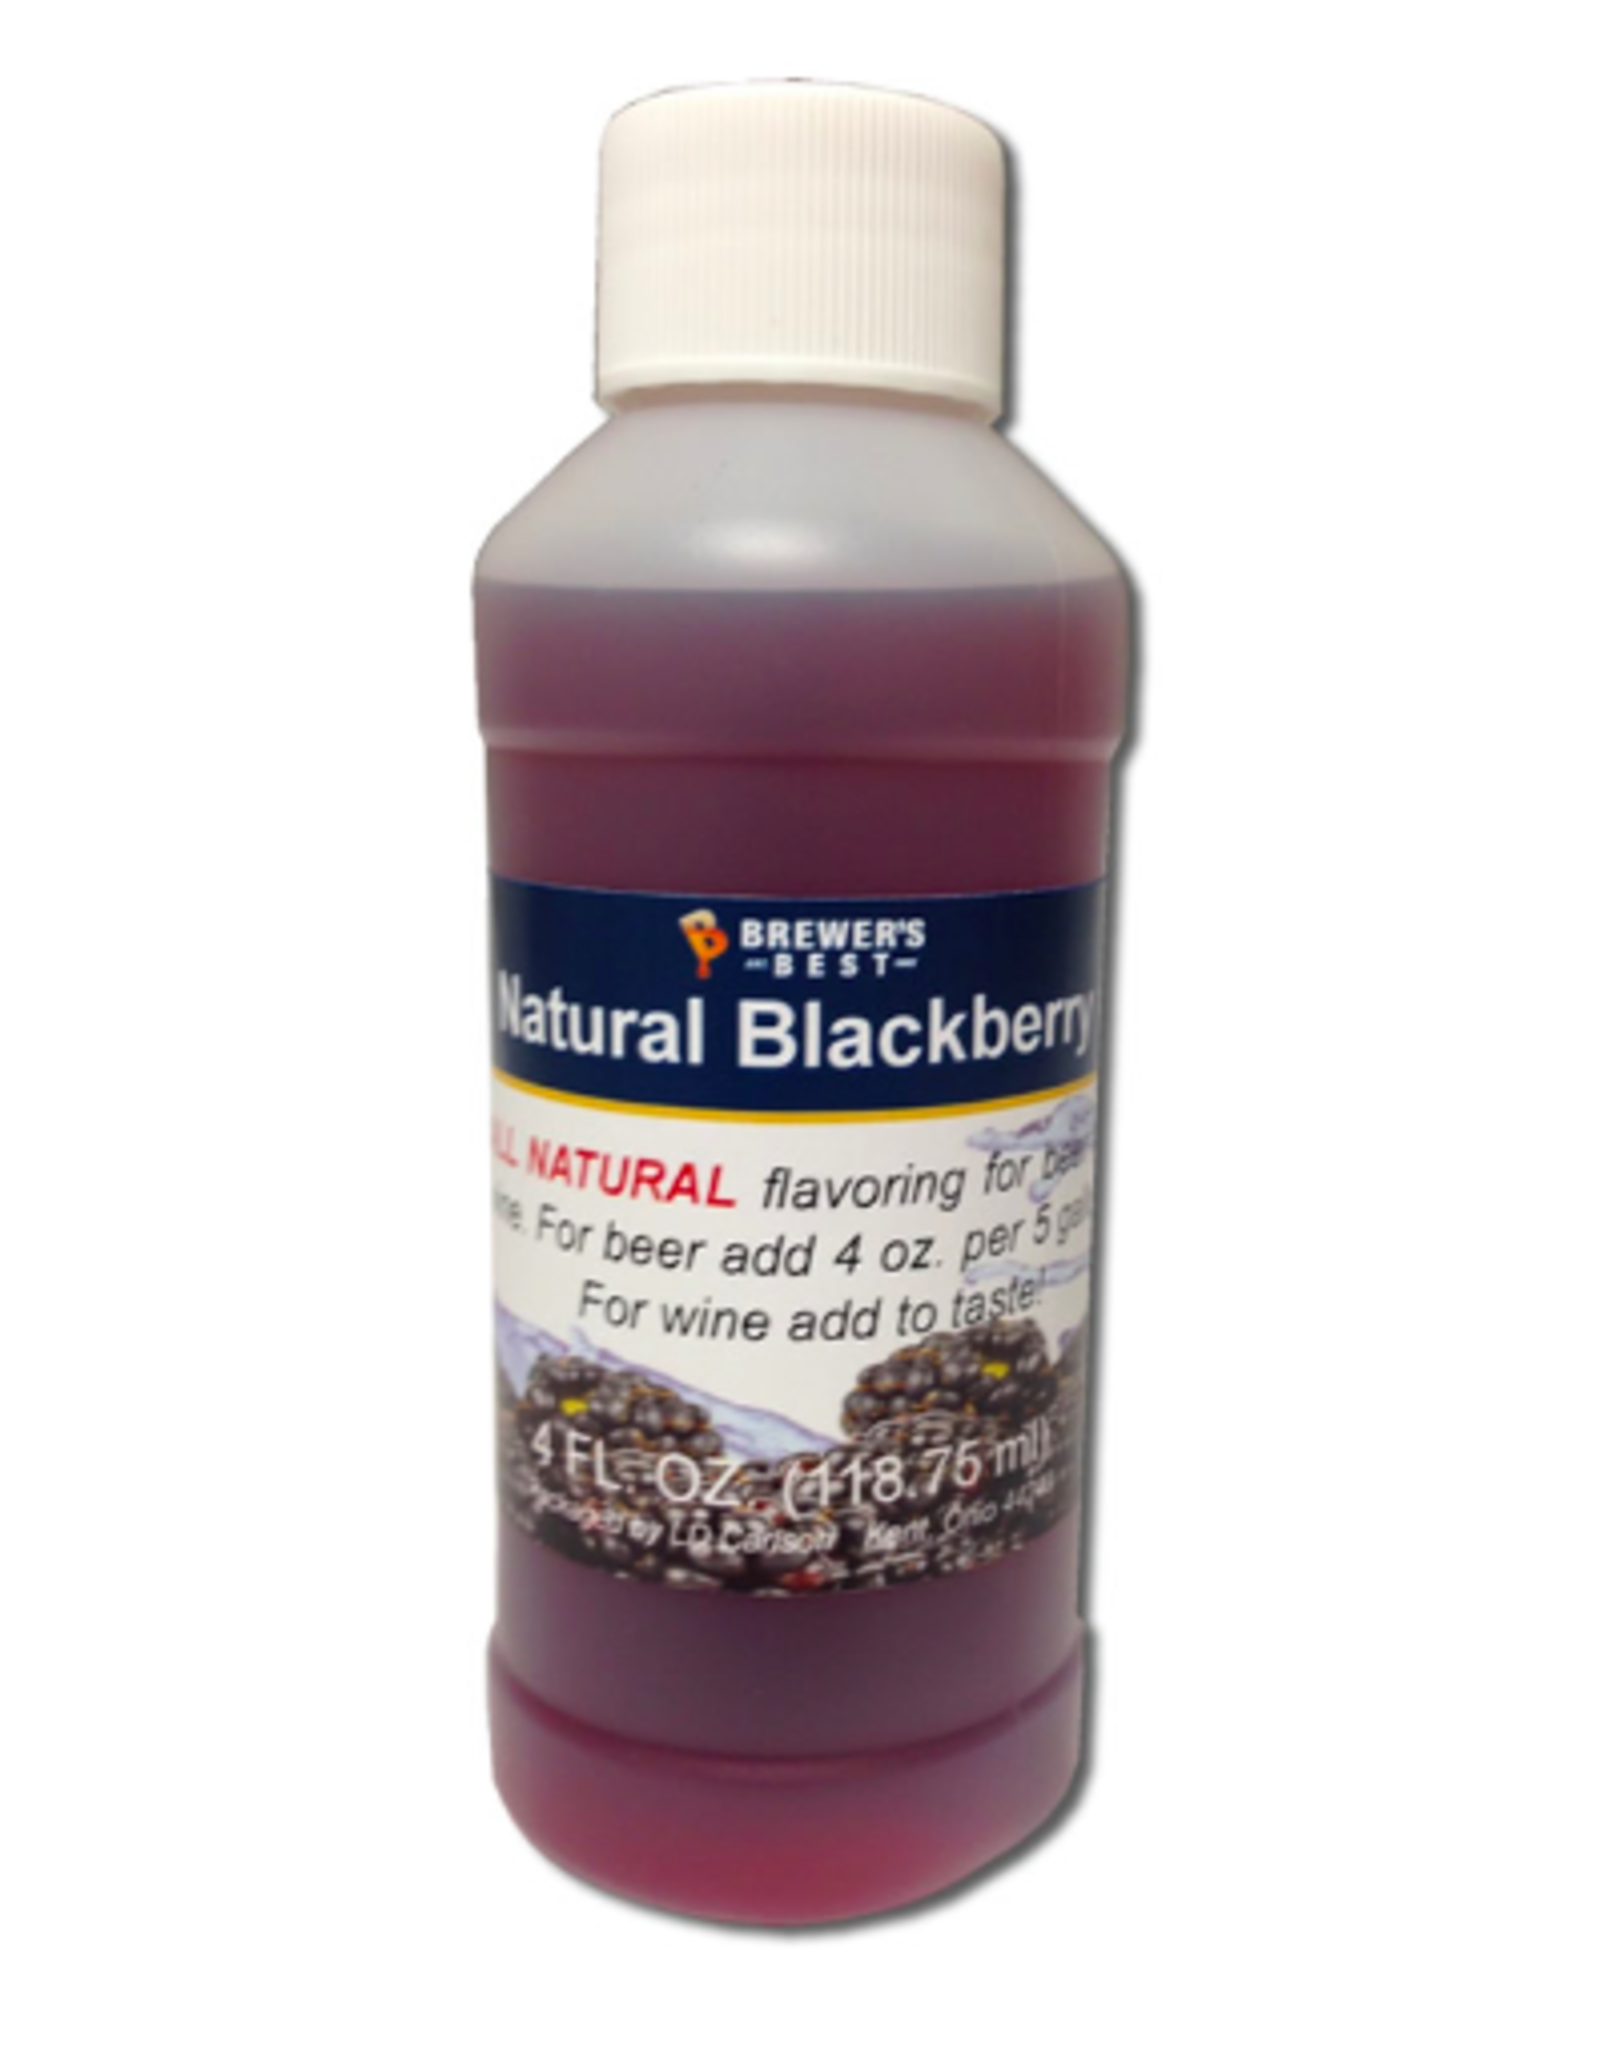 NATURAL BLACKBERRY FLAVORING EXTRACT 4 OZ